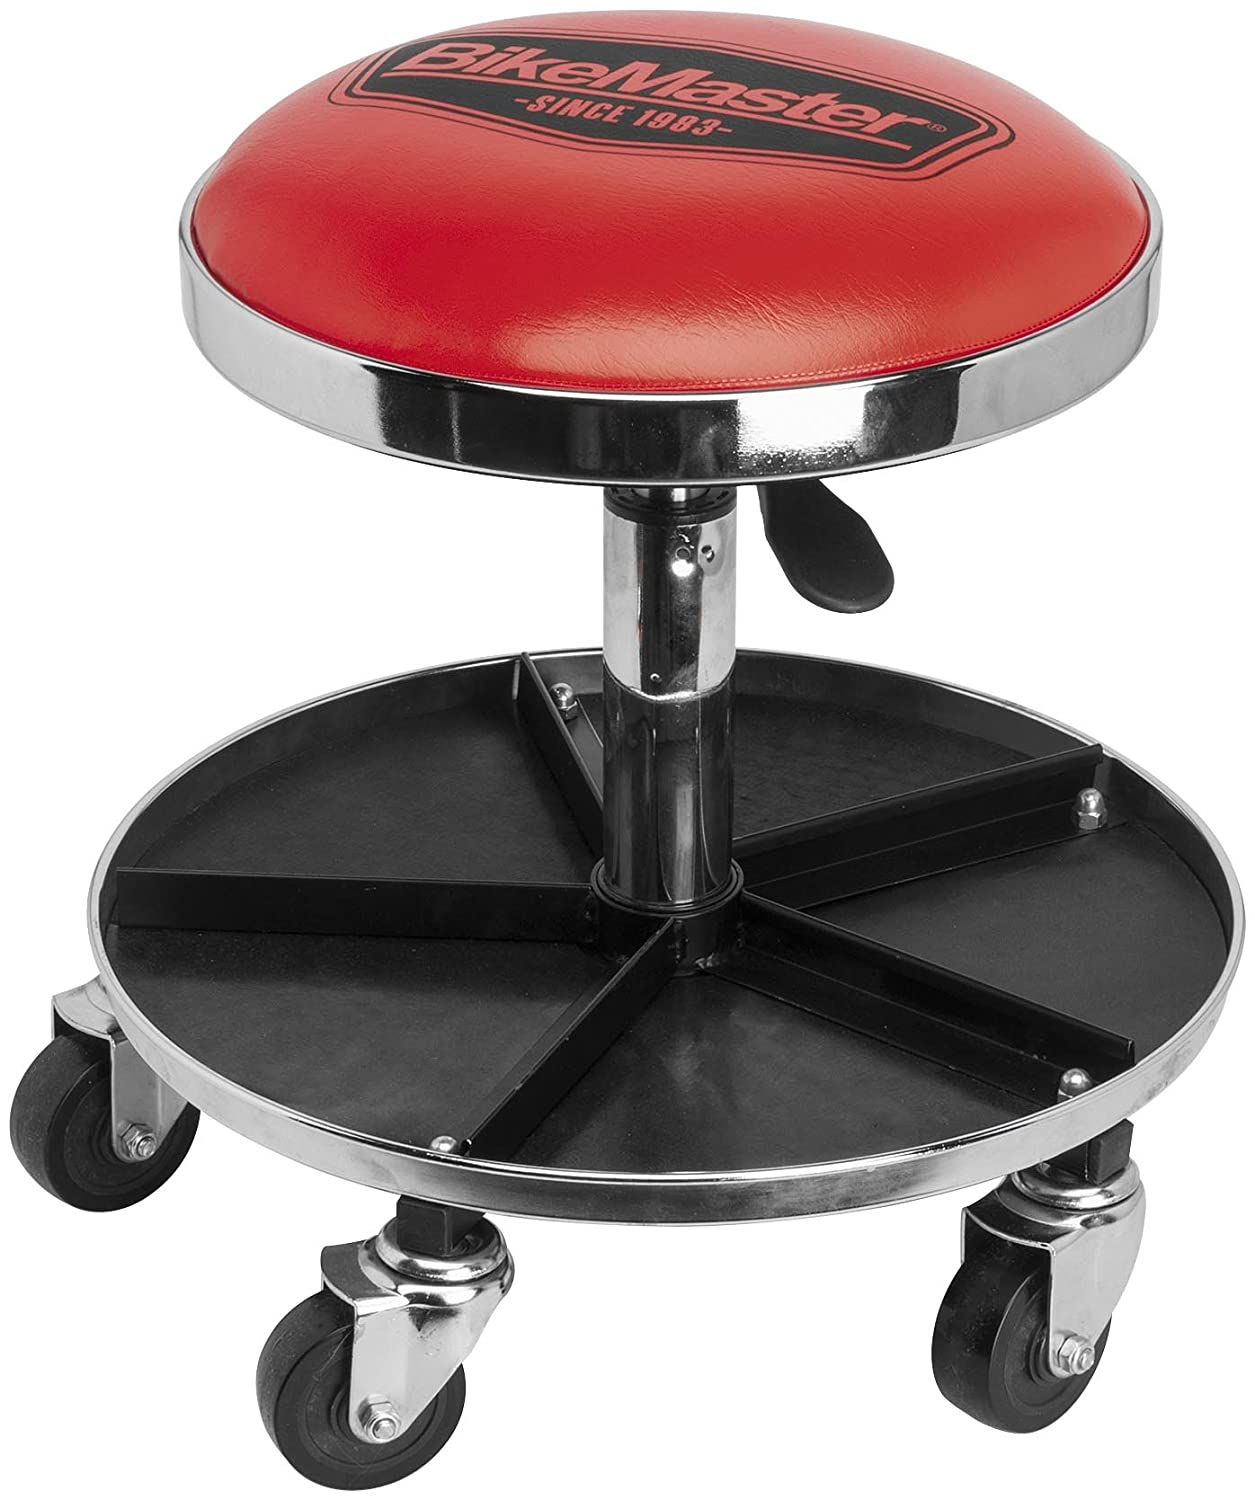 BikeMaster Ultimate Shop Stool with Tool Caddy PWMS-03